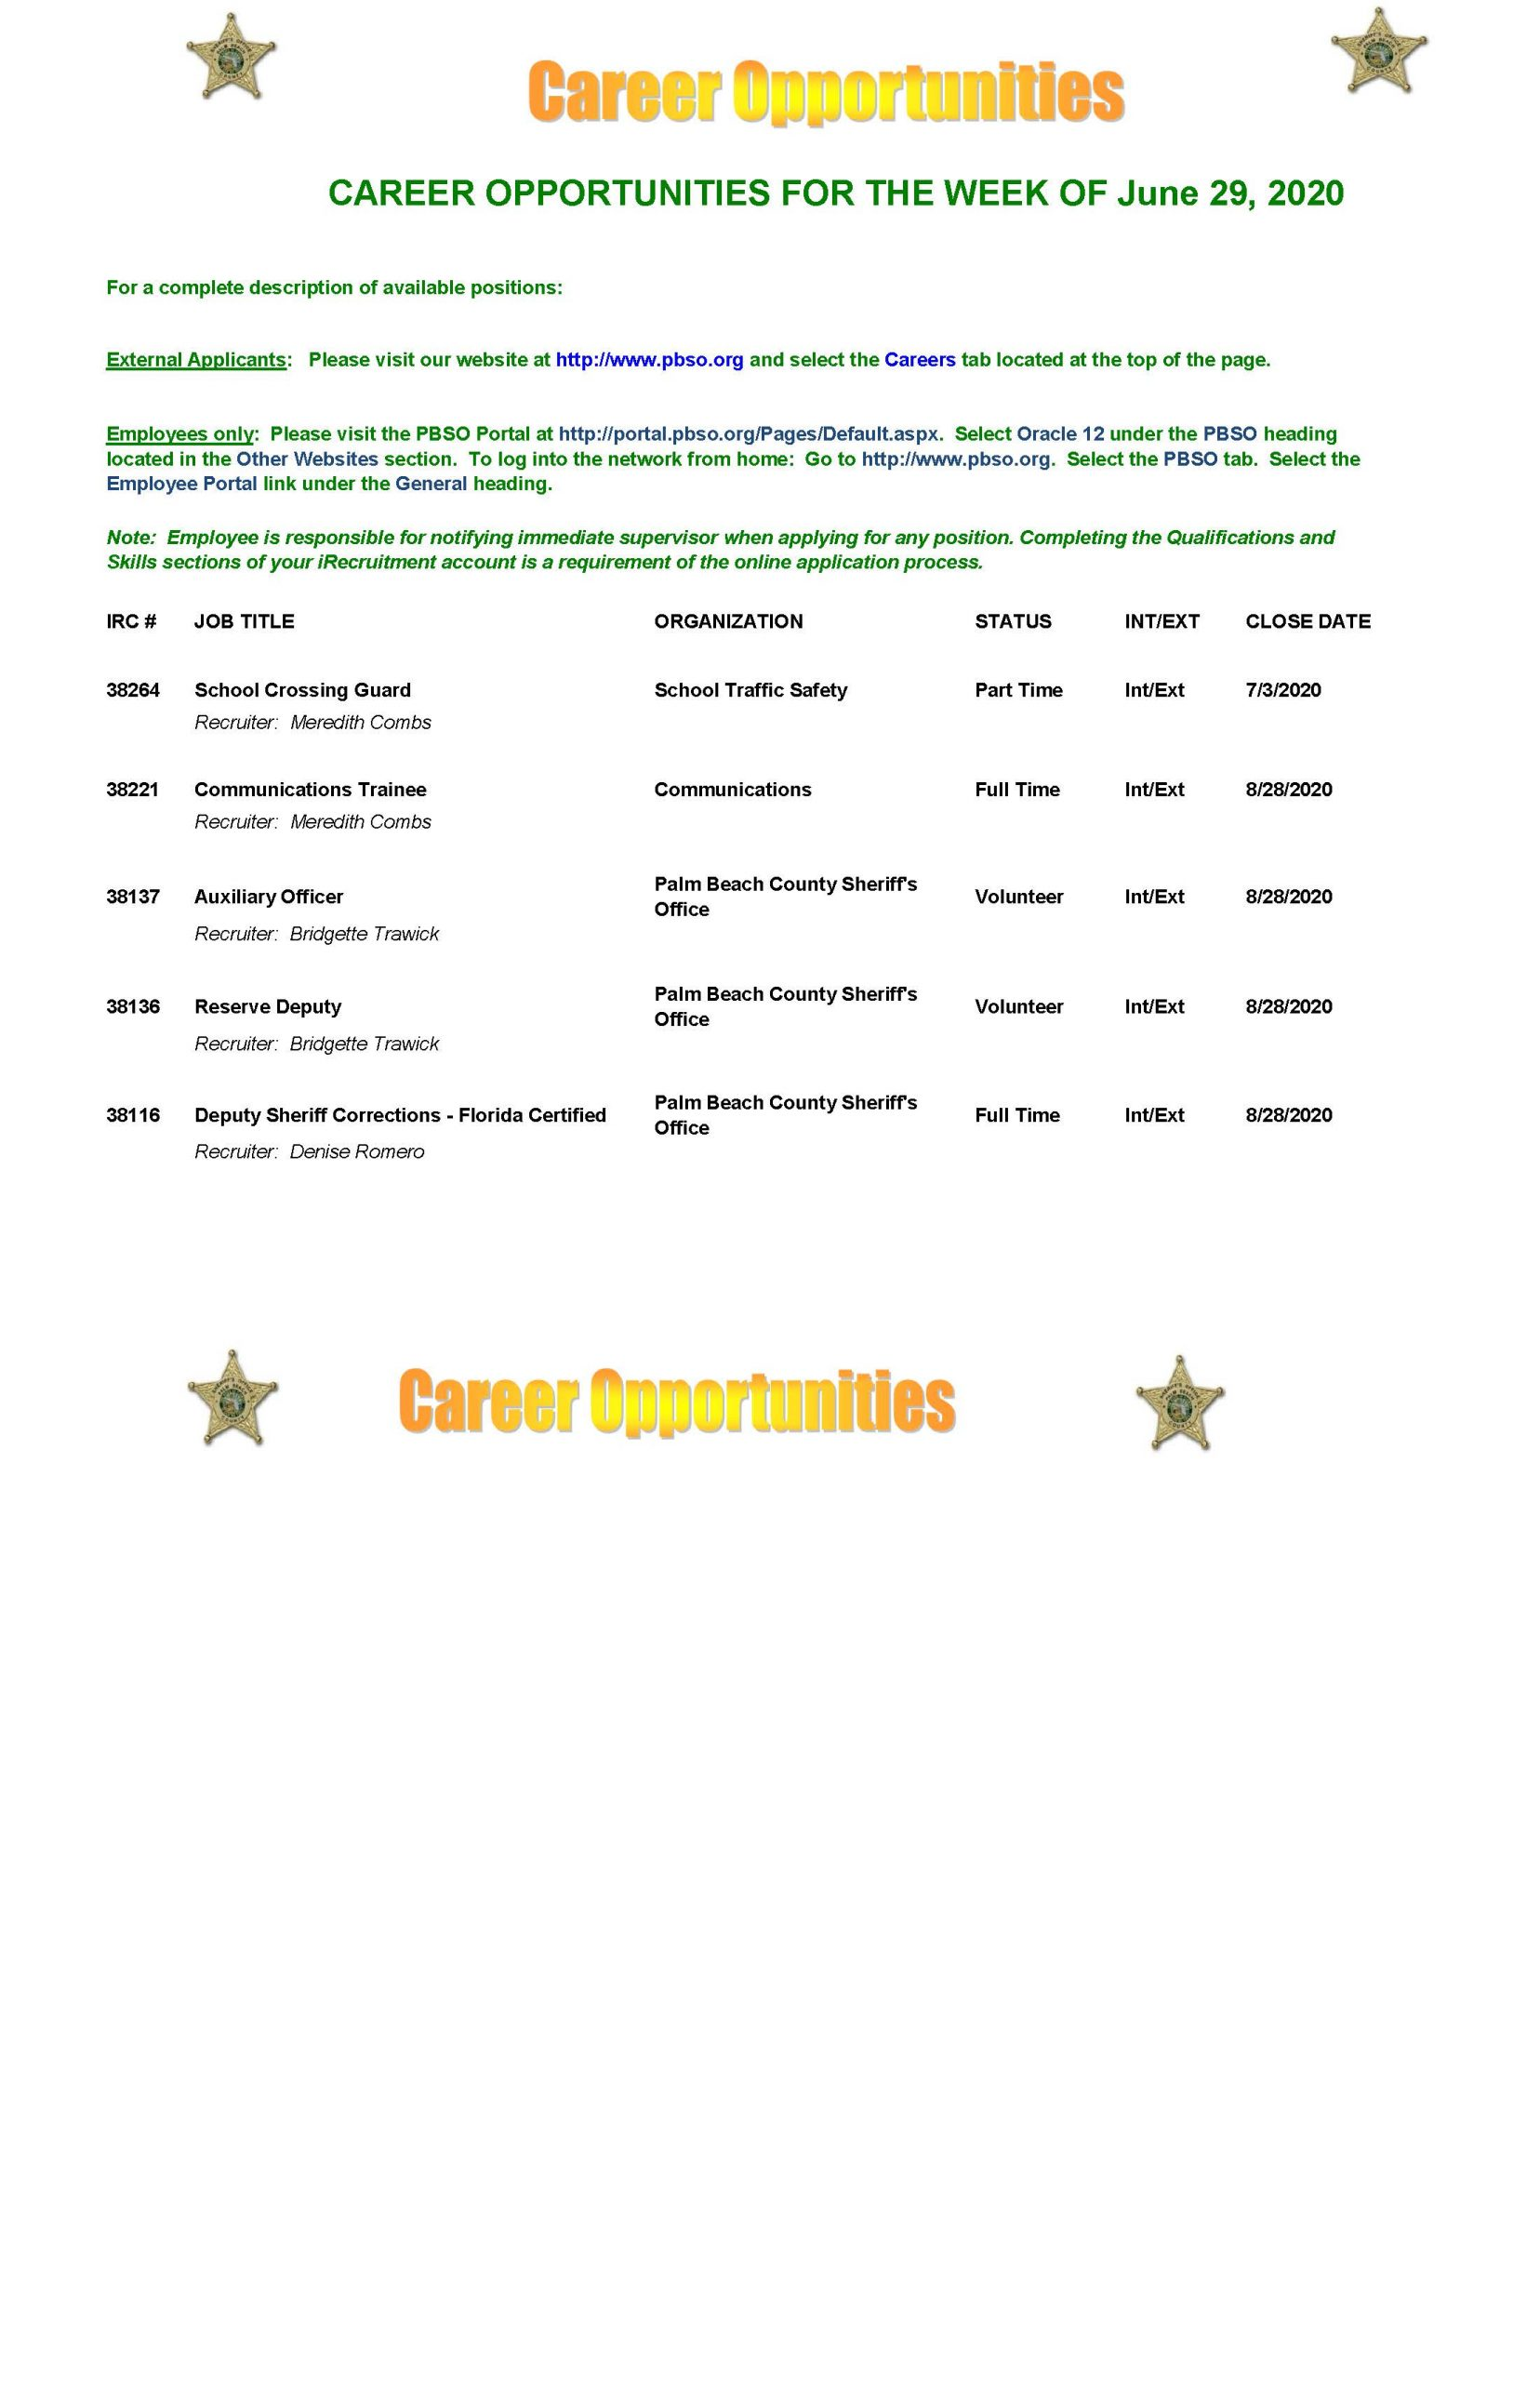 Career Opportunities for week of 6-29-2020